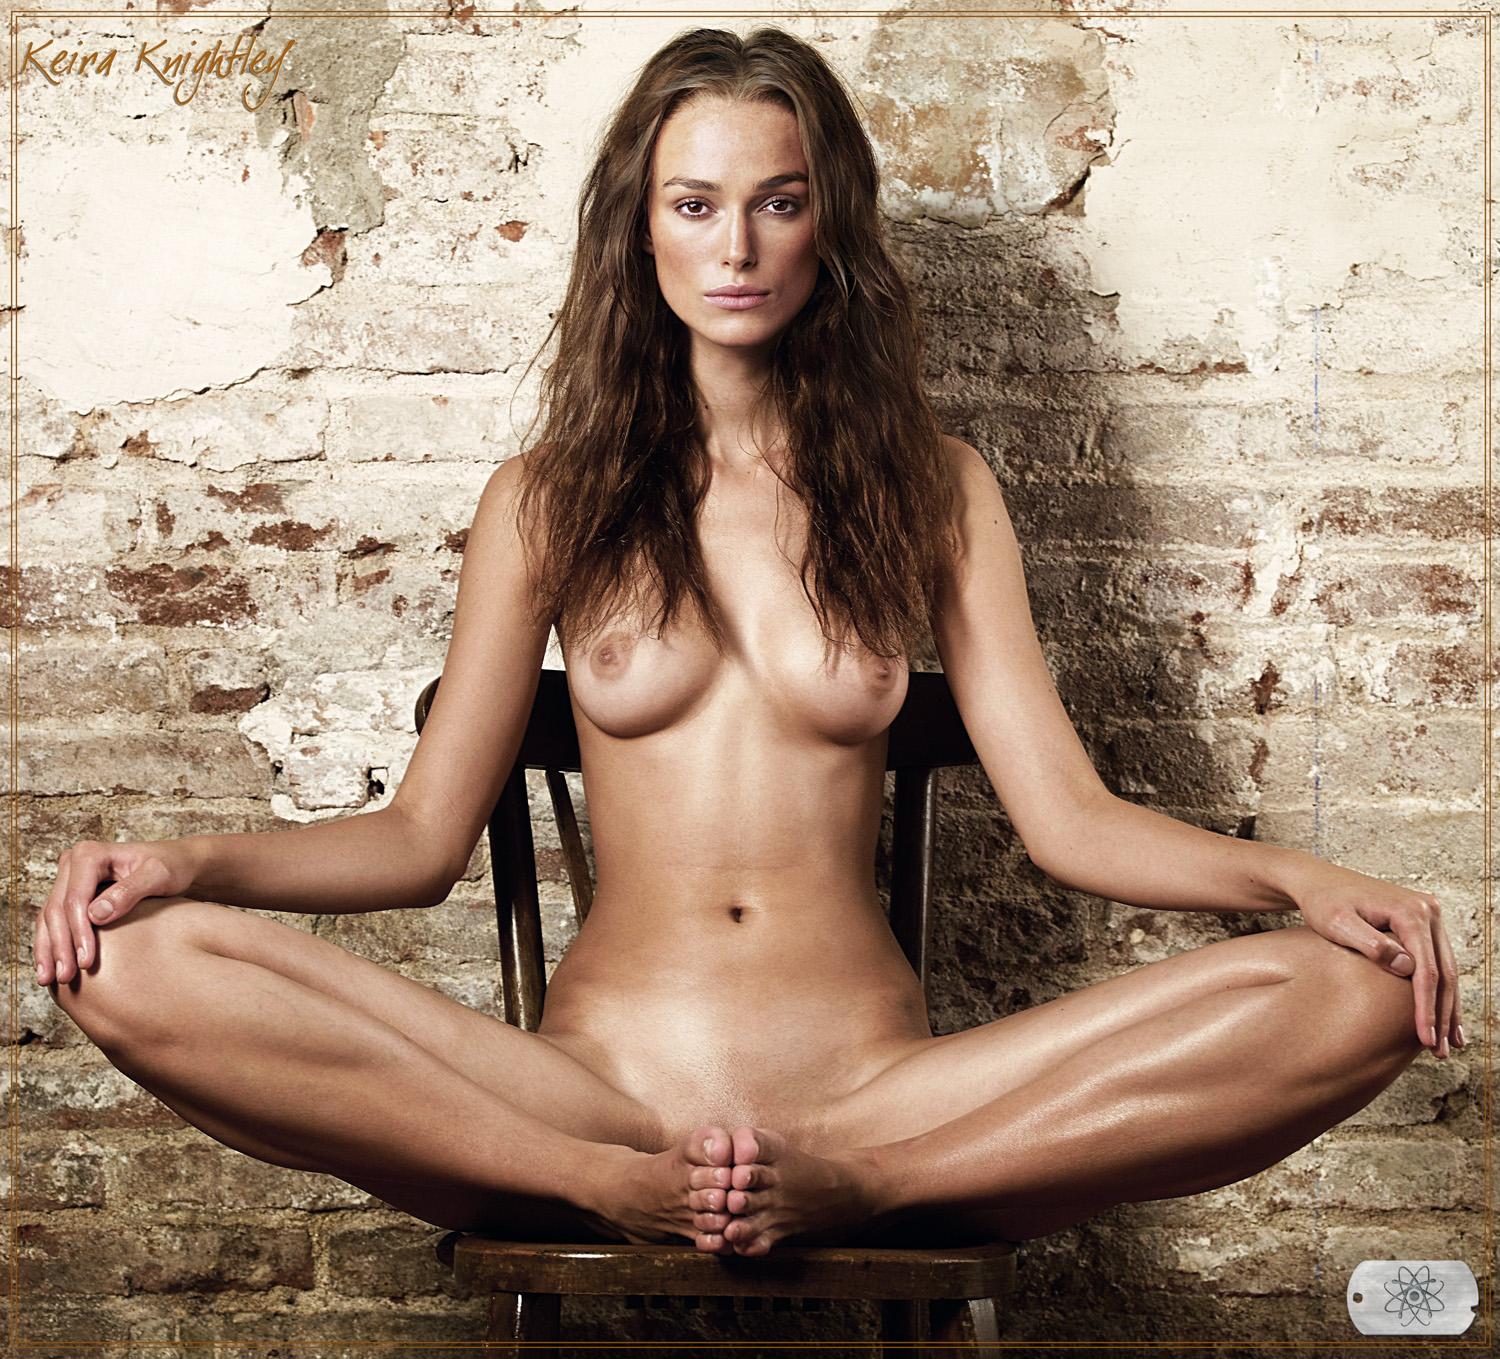 Keira knightley fake nude pictures at JustPicsPlease